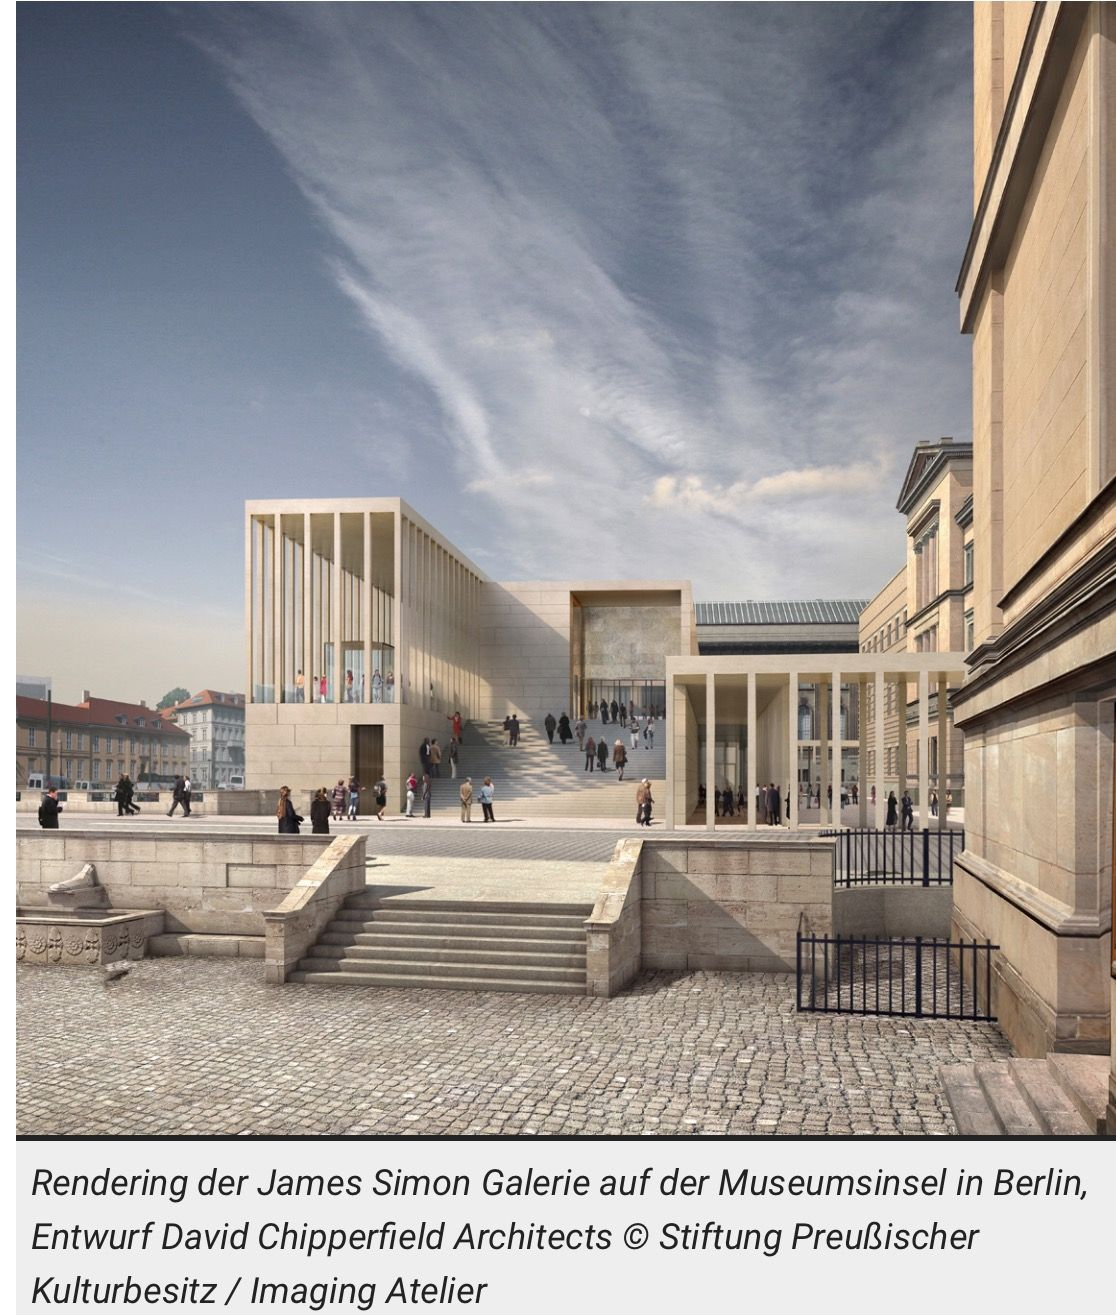 Berlin Museum Architecture David Chipperfield Architects Architecture